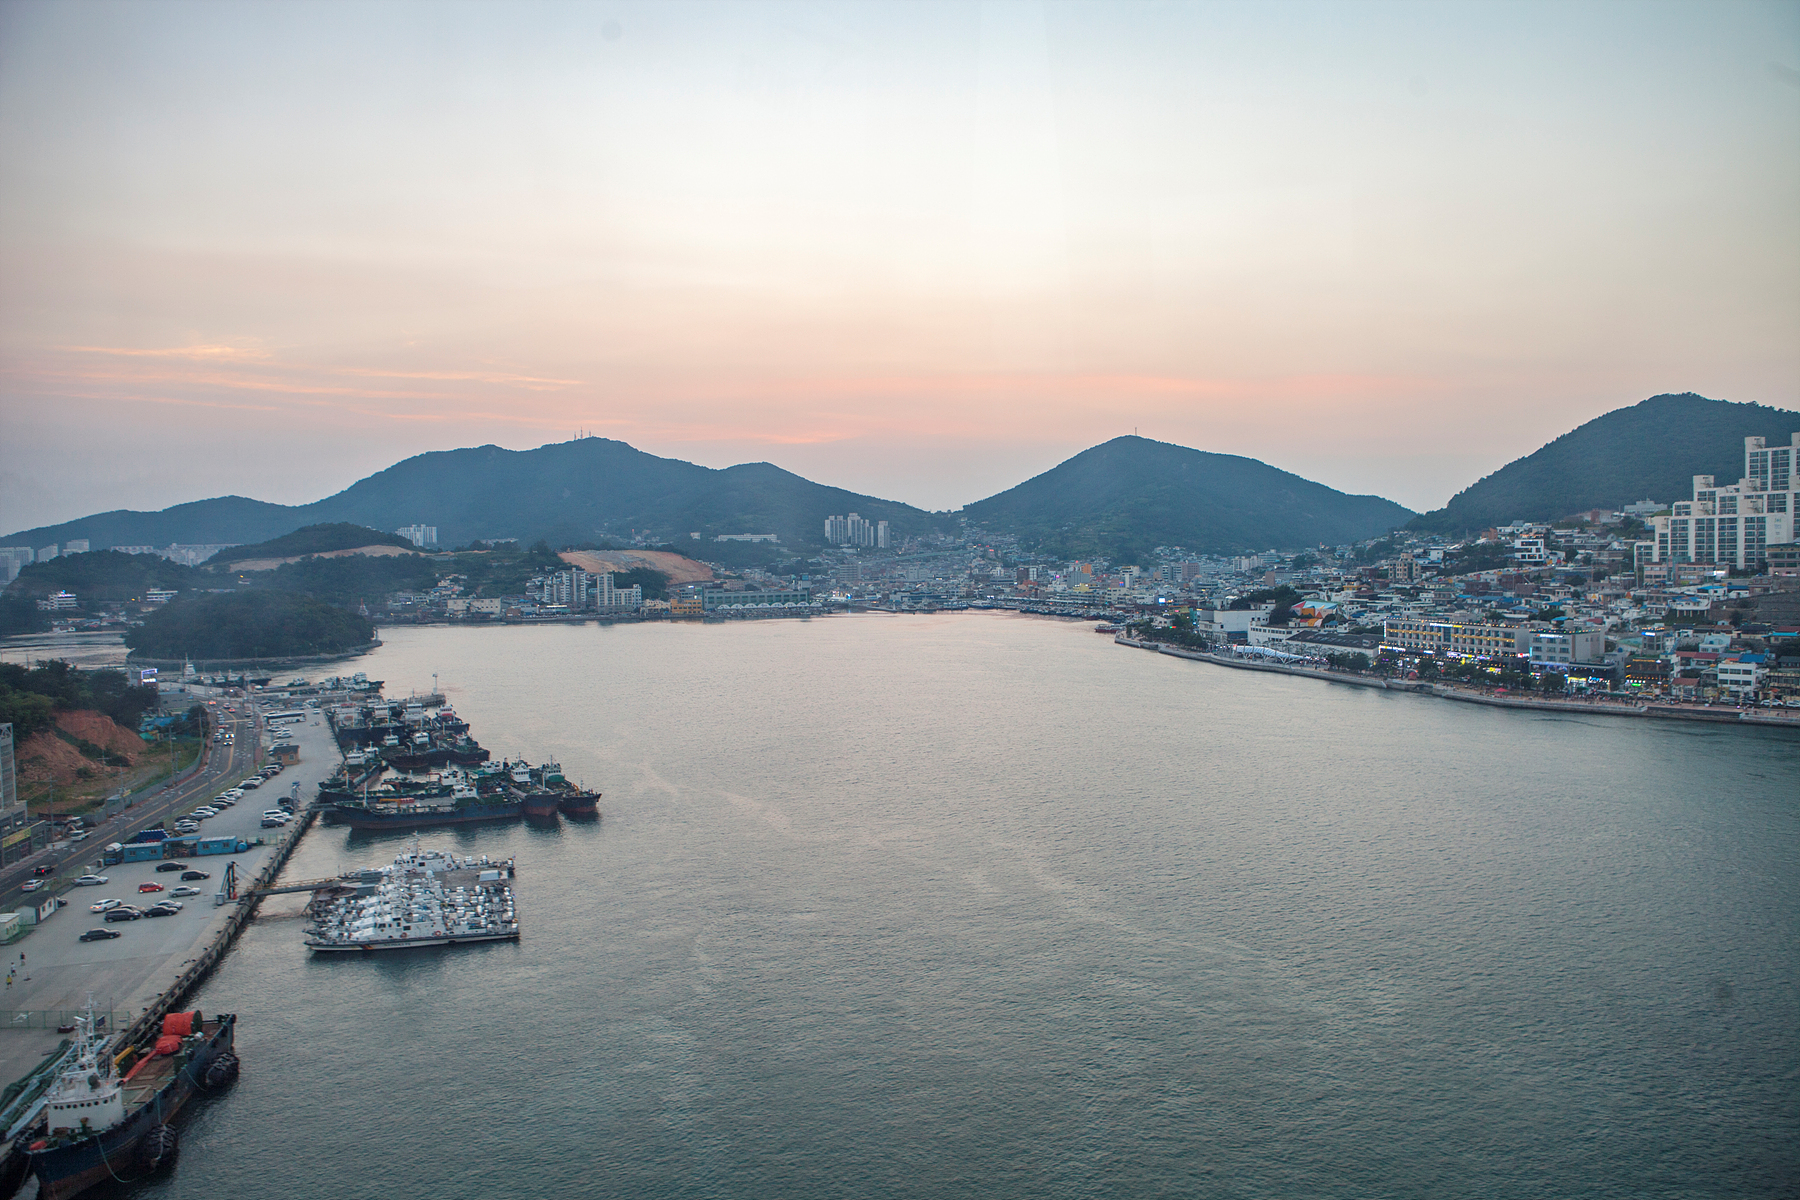 Korea's First Sea Crossing Cable Car_Yeosu Cable Car